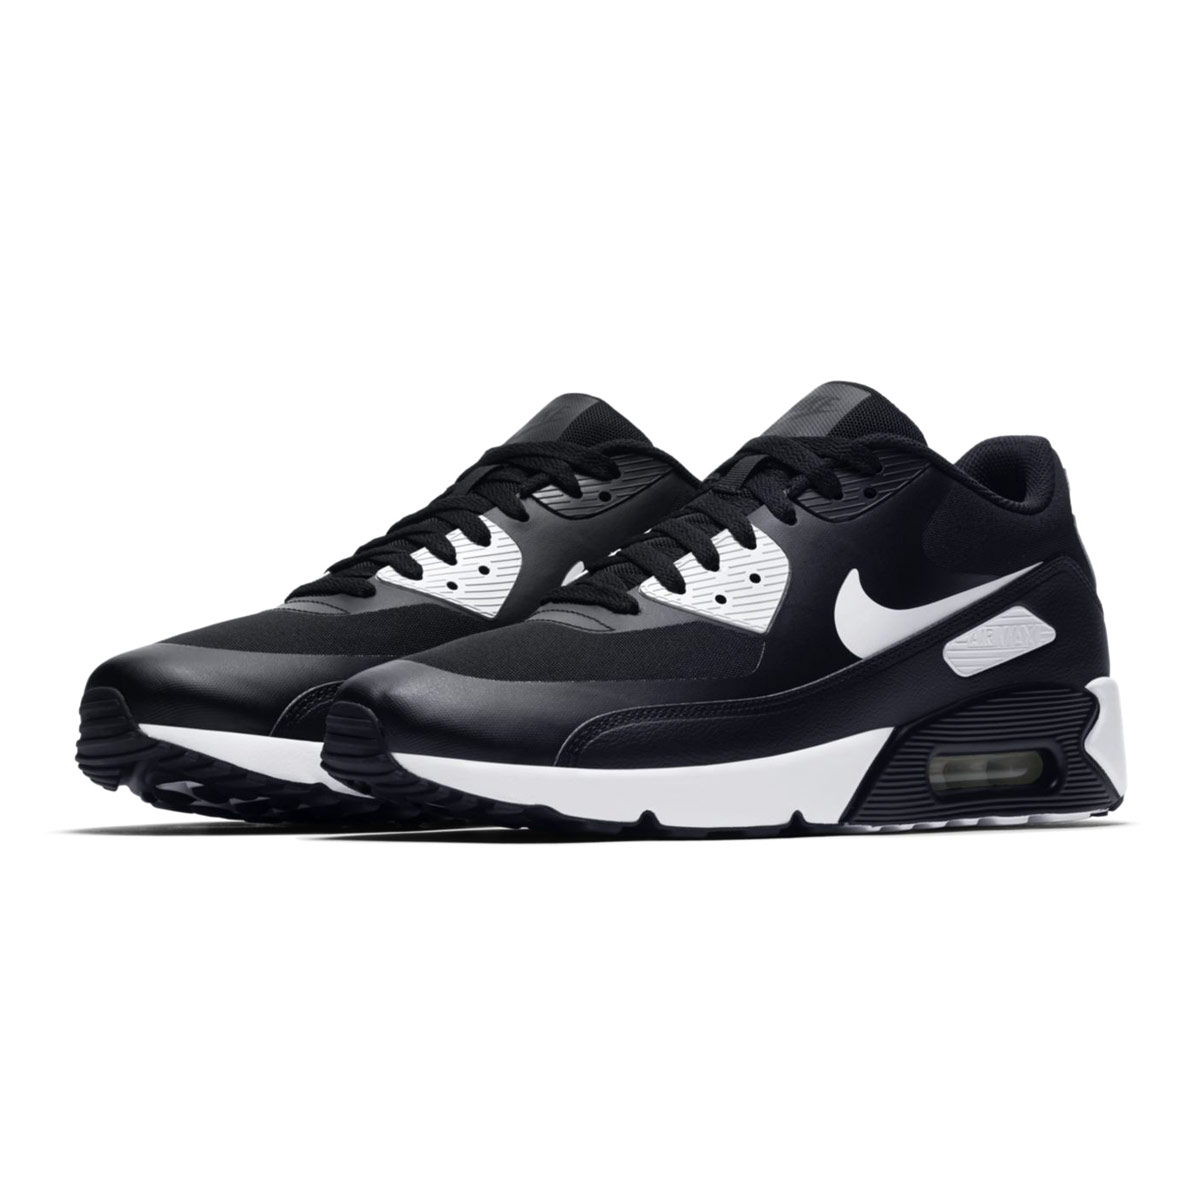 save off c85f5 62e3a ... wholesale nike air max 90 ultra 2.0 essential kie ney amax 90 ultra 2.0  essential black